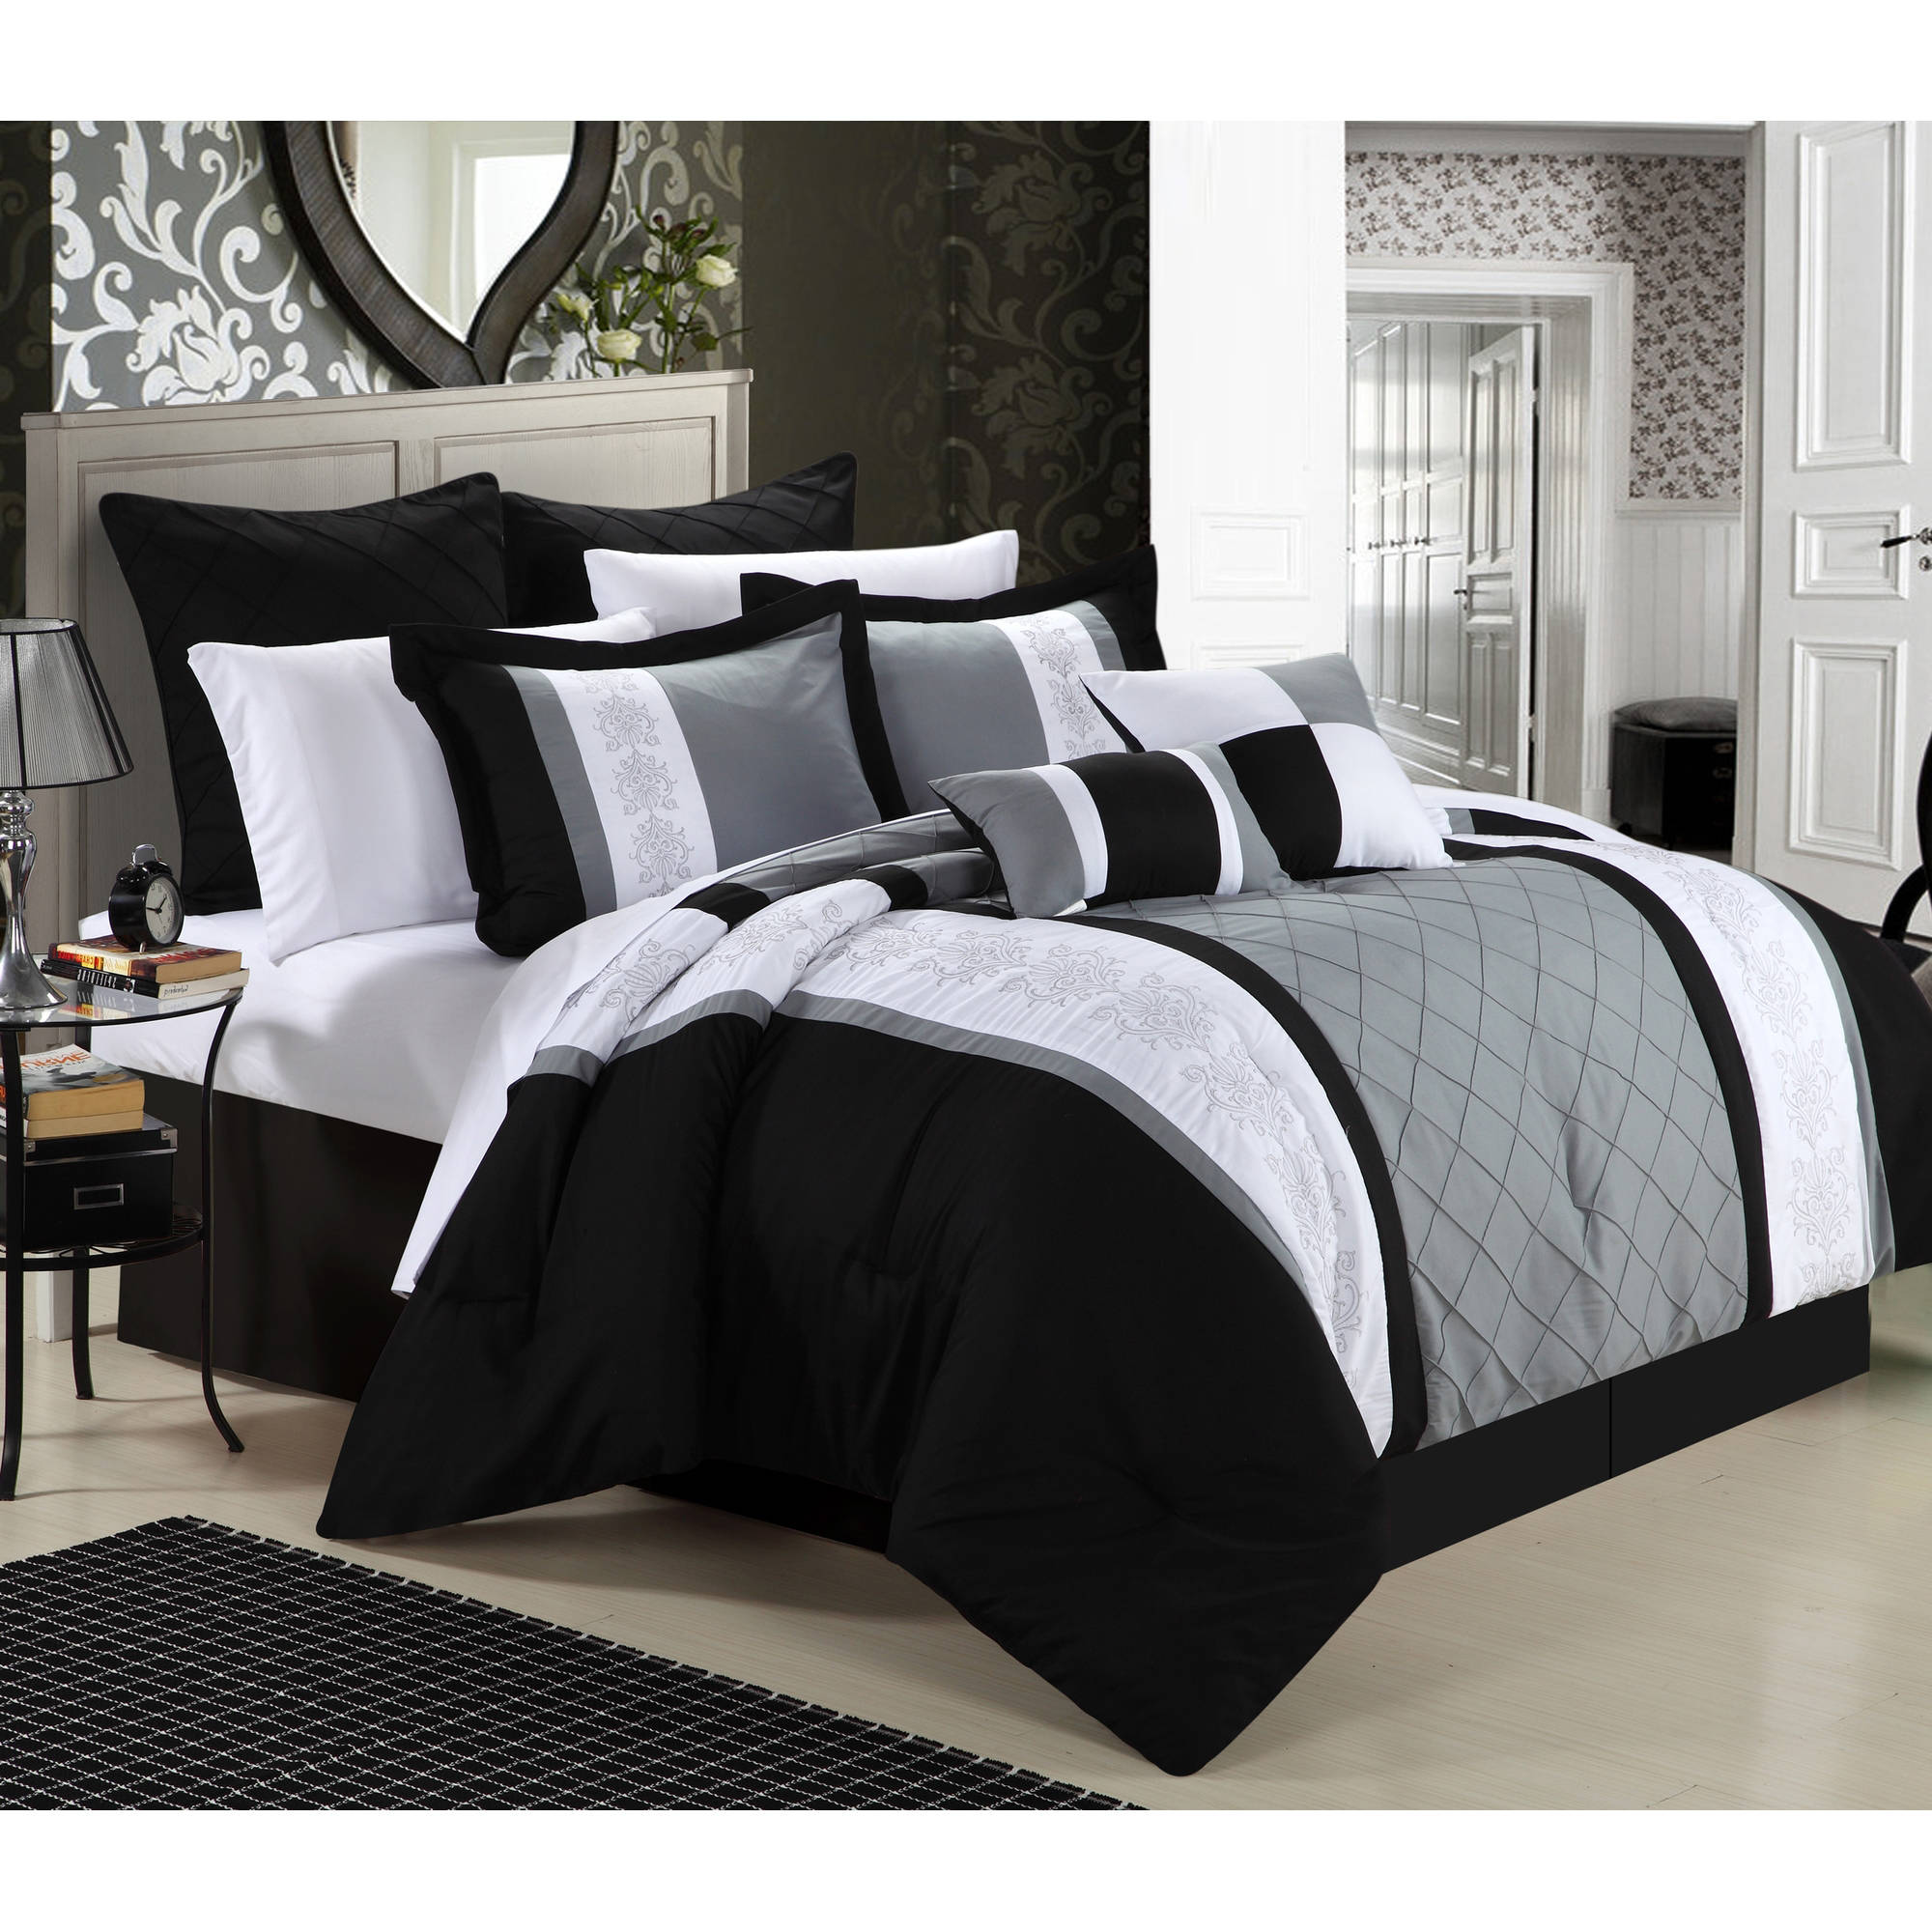 Arlington 8-Piece Bedding Comforter Set